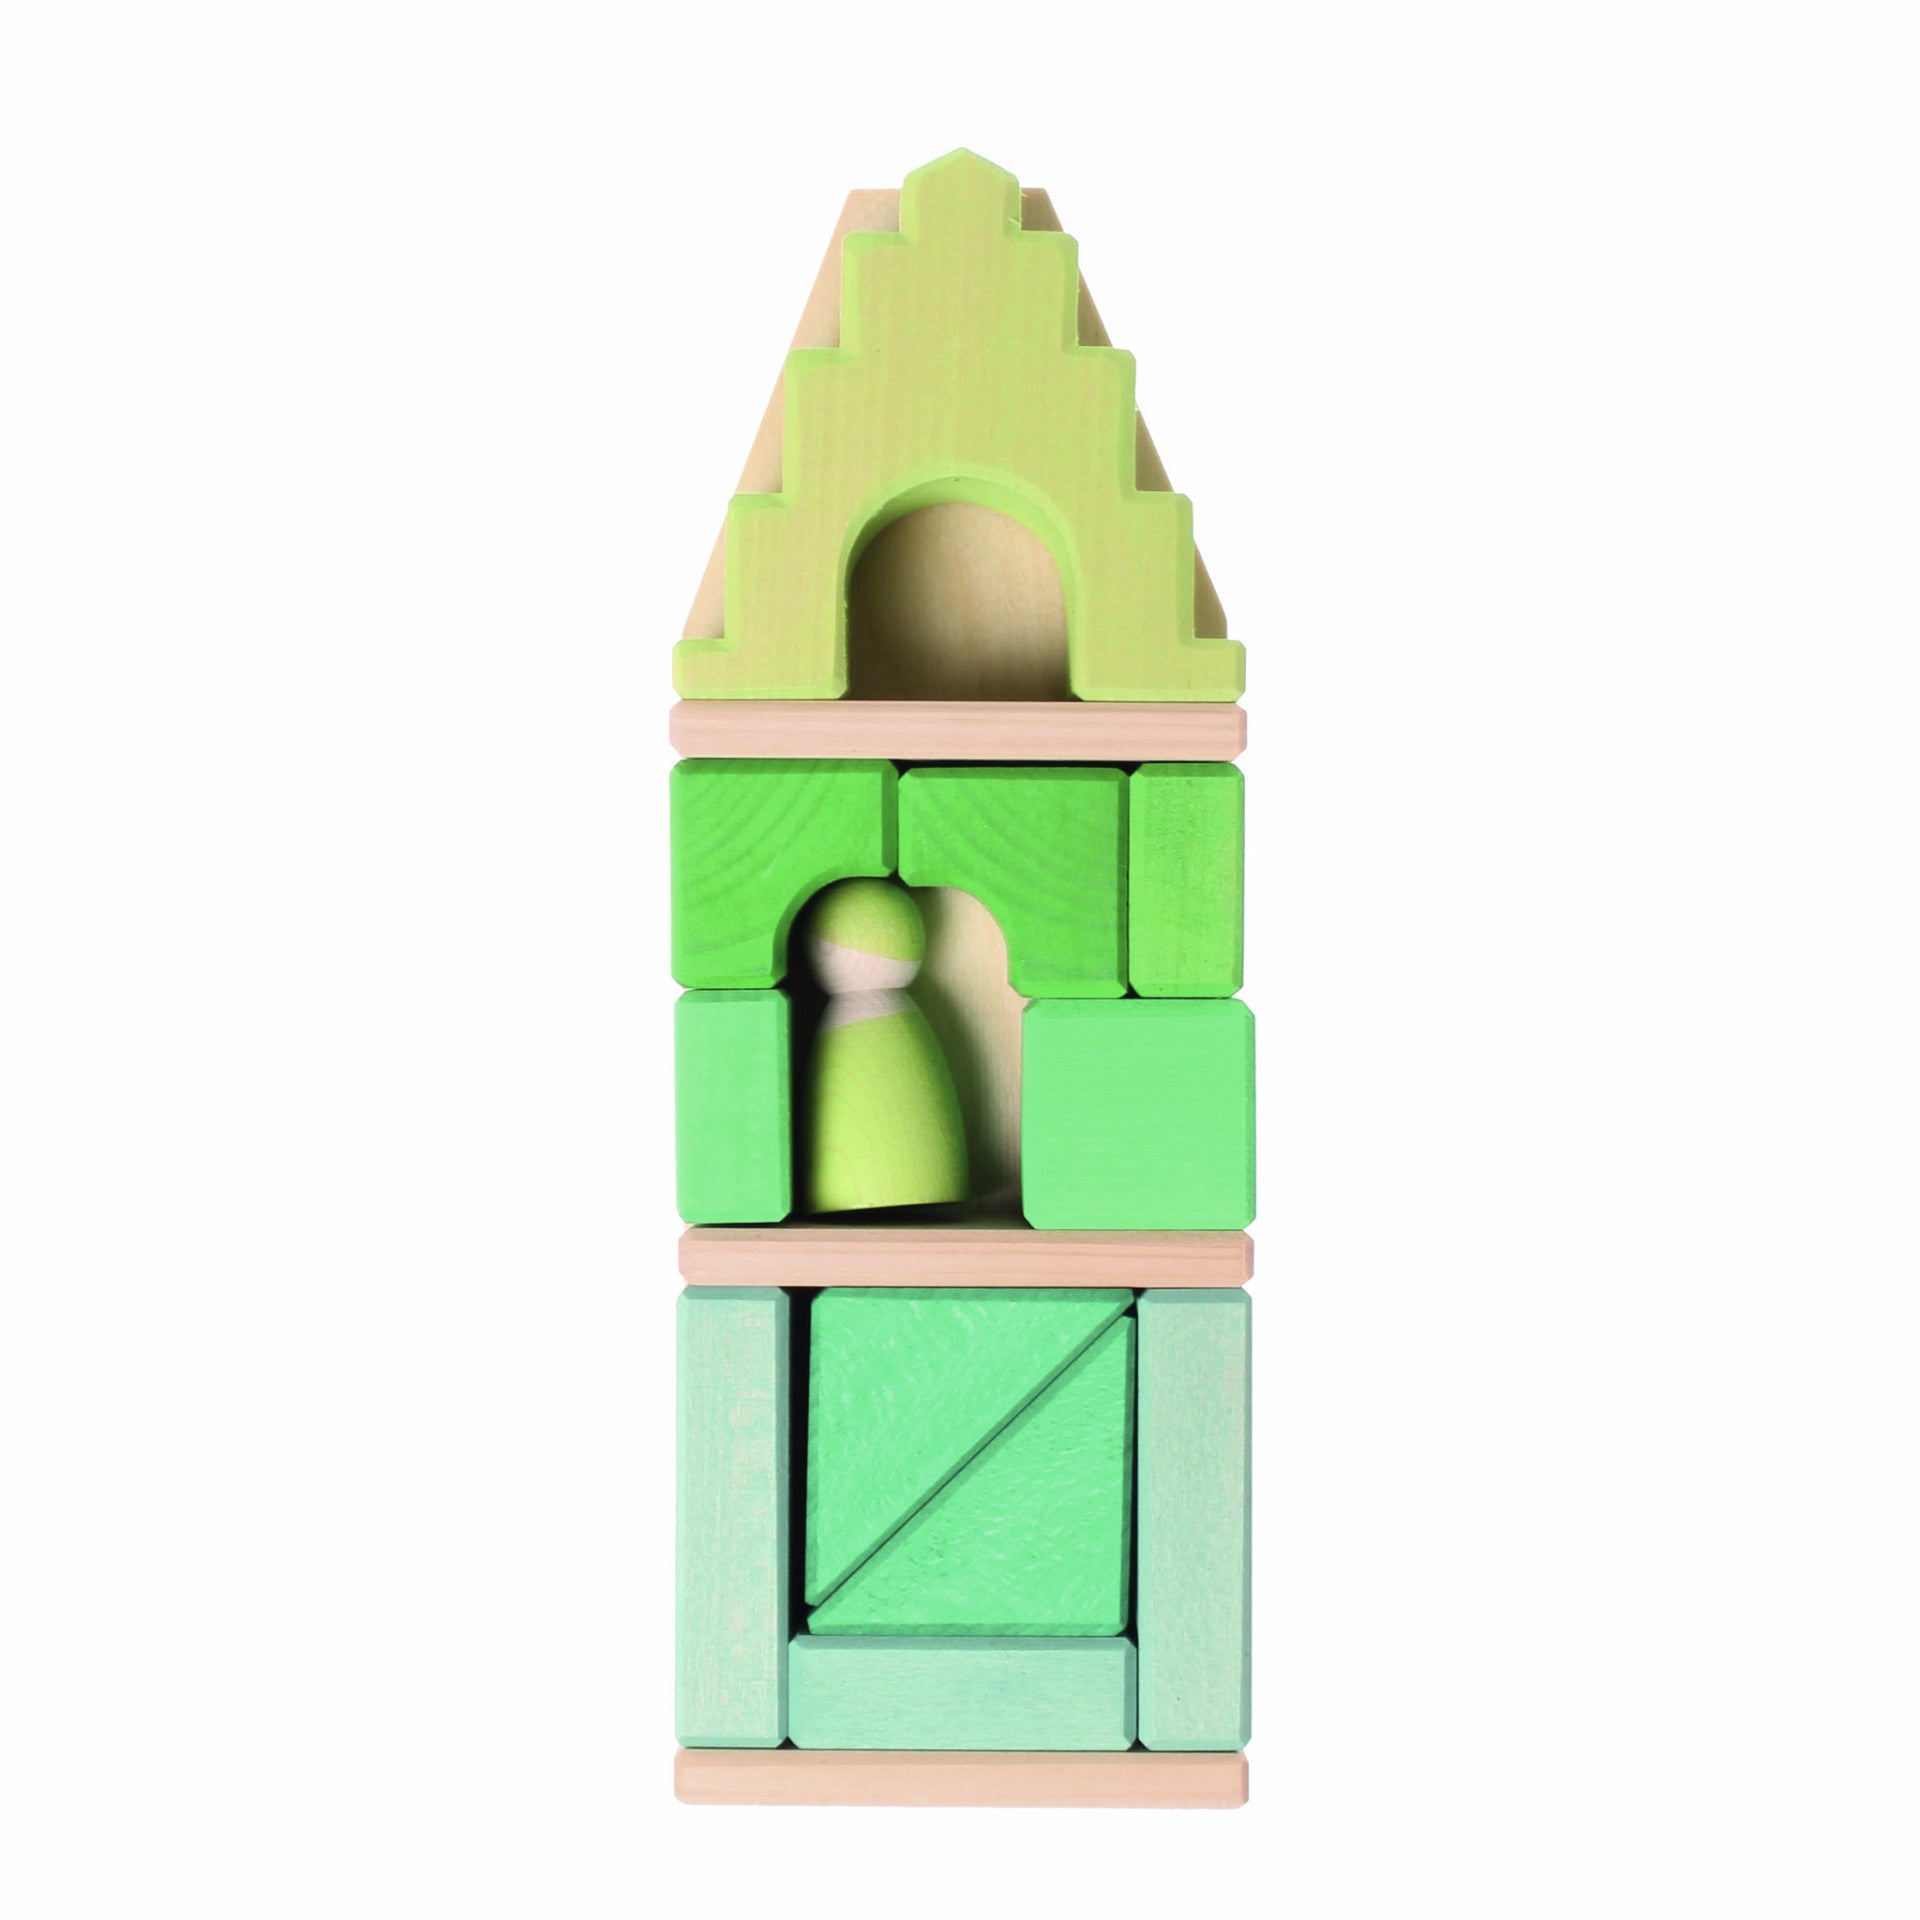 Green Framehouse Building Blocks by Grimm